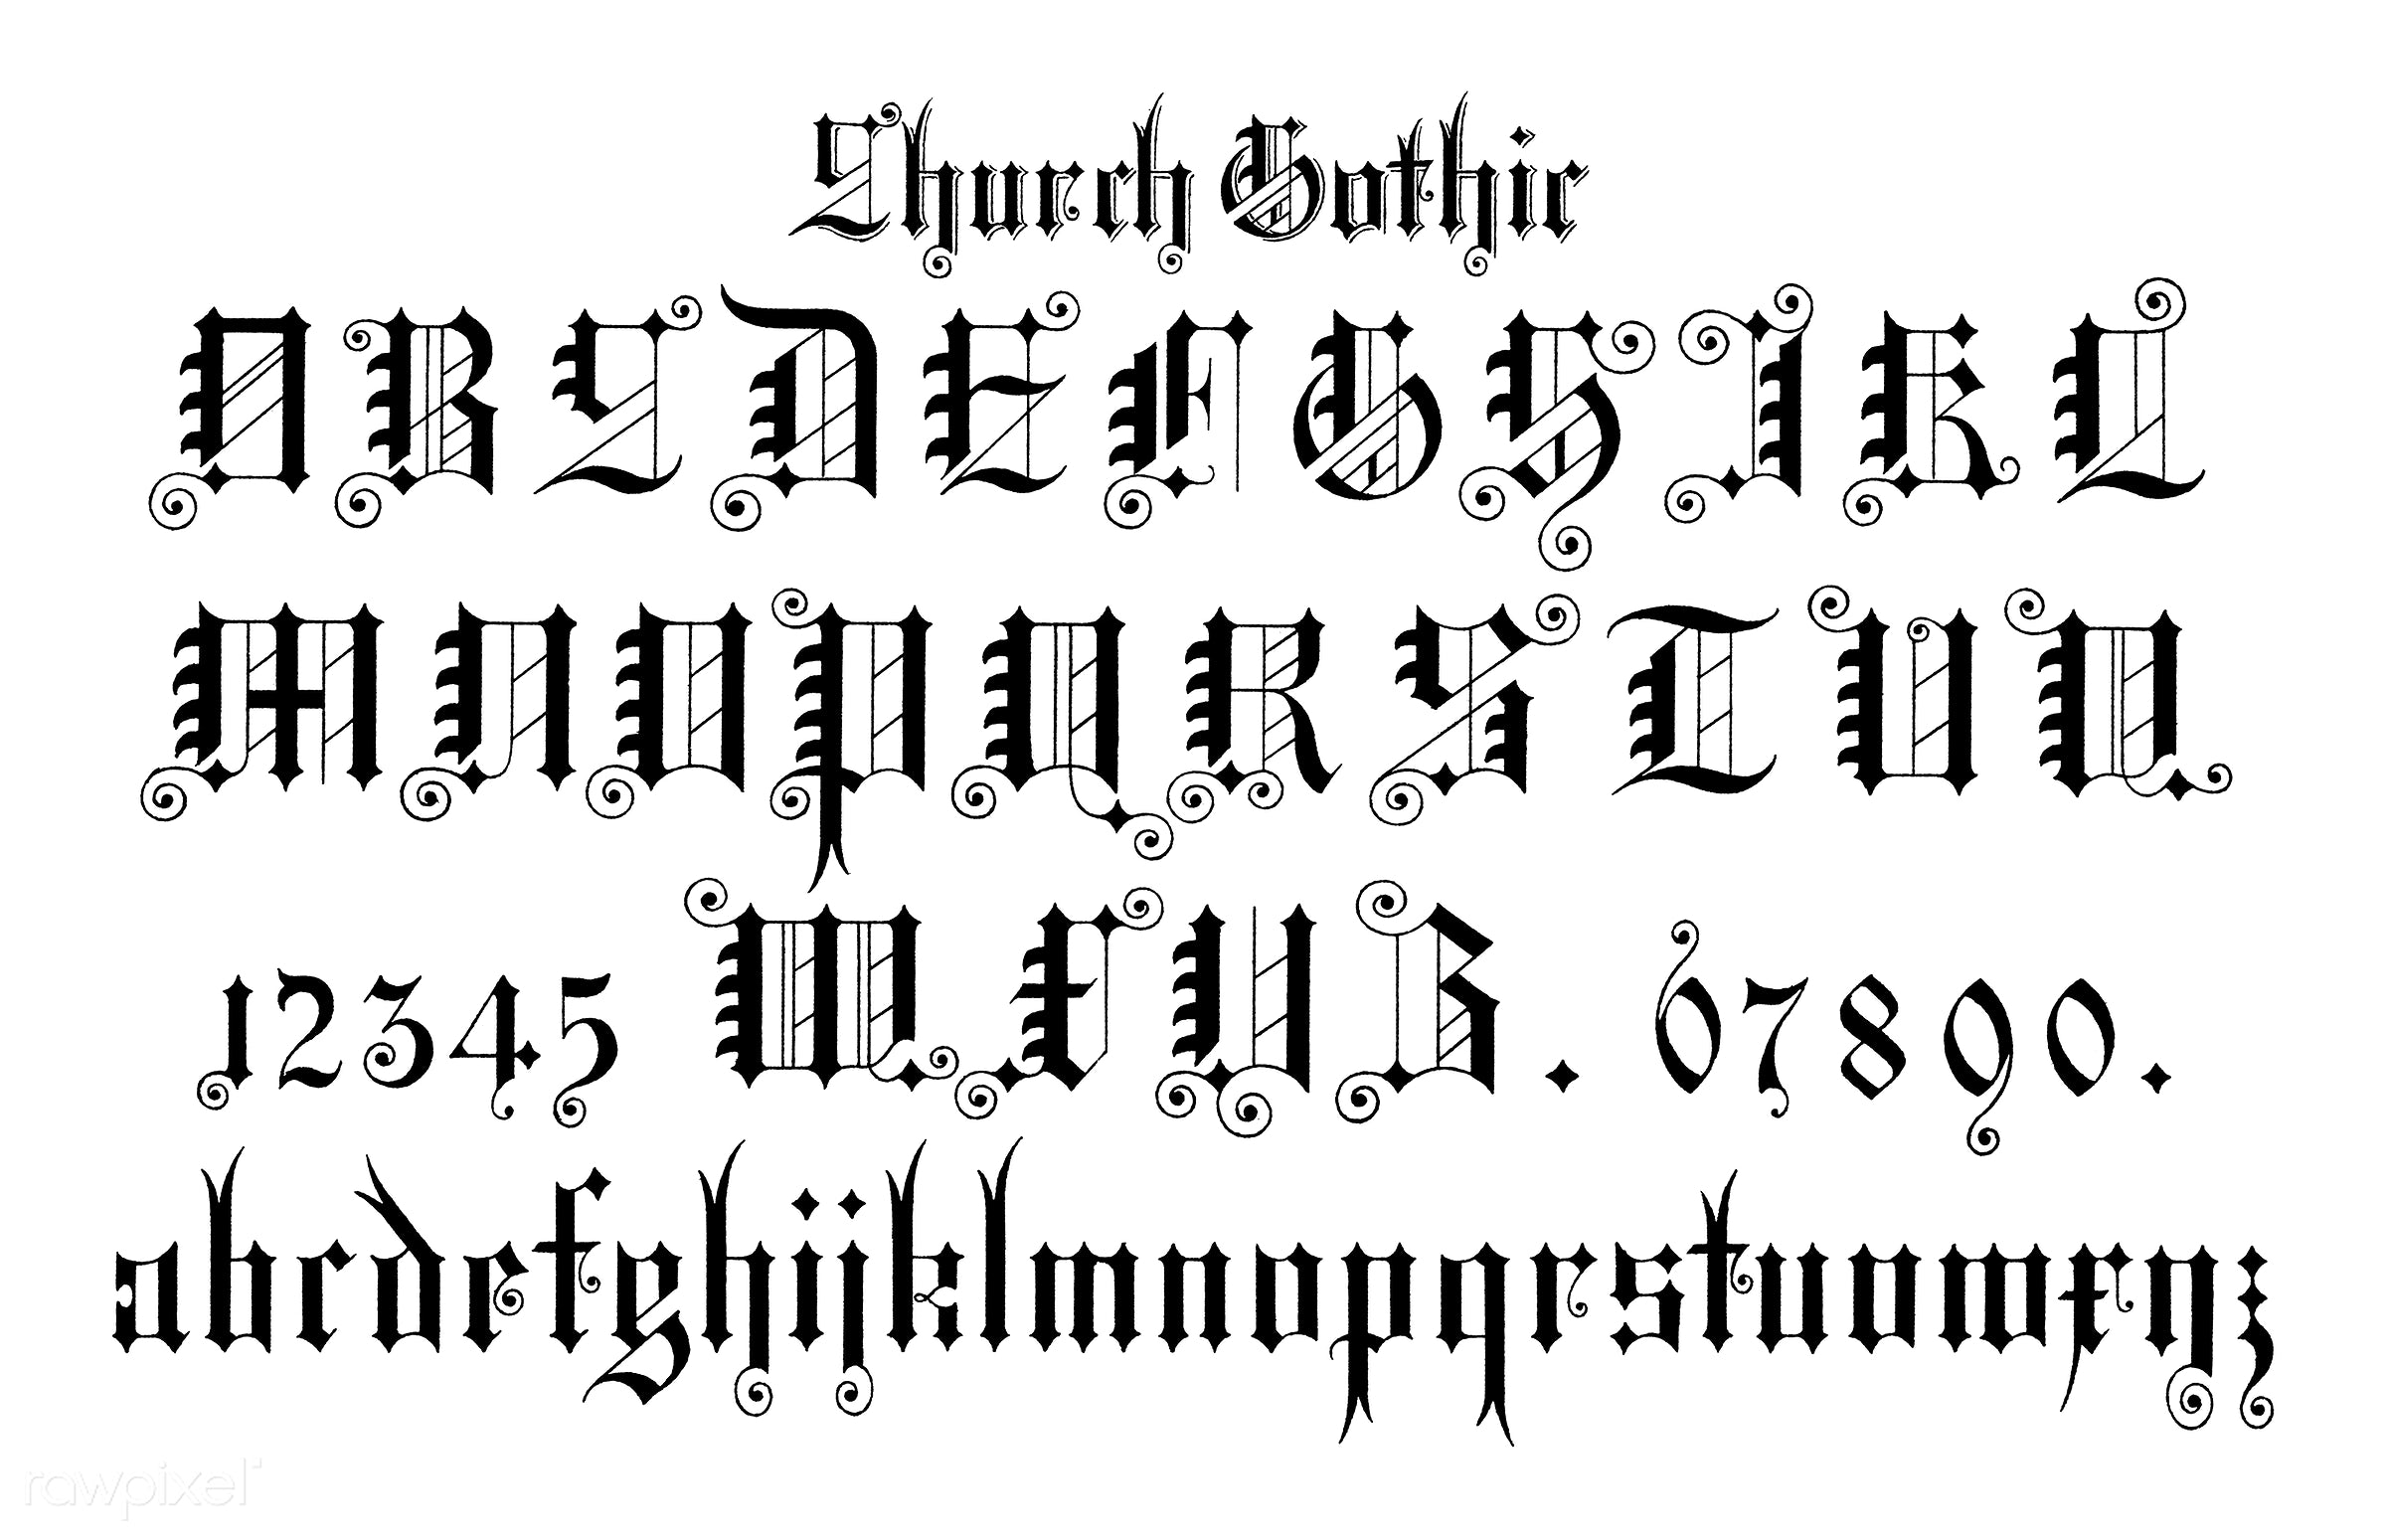 Church Gothic Calligraphy Fonts From Draughtsmans Alphabets By Hermann Esser 1845 1908 Digitally Enhanced Our Own 5th Edition Of The Publication